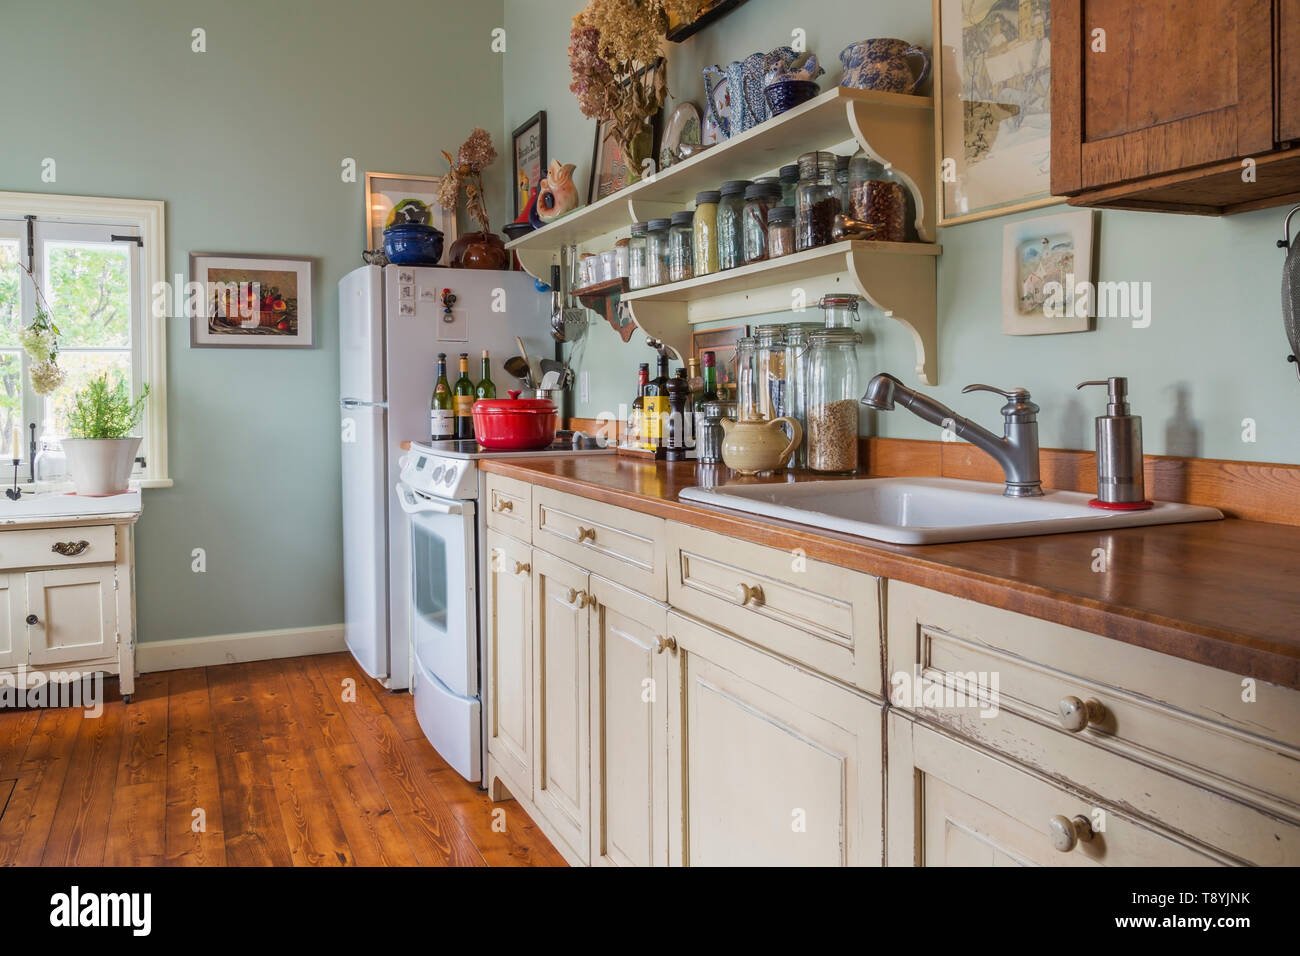 View of country style kitchen with old herbs and spice glass jars on countertop, shelves and pinewood floorboards inside an old renovated 1650s house, Quebec, Canada. This image is property released. CUPR0336 Stock Photo